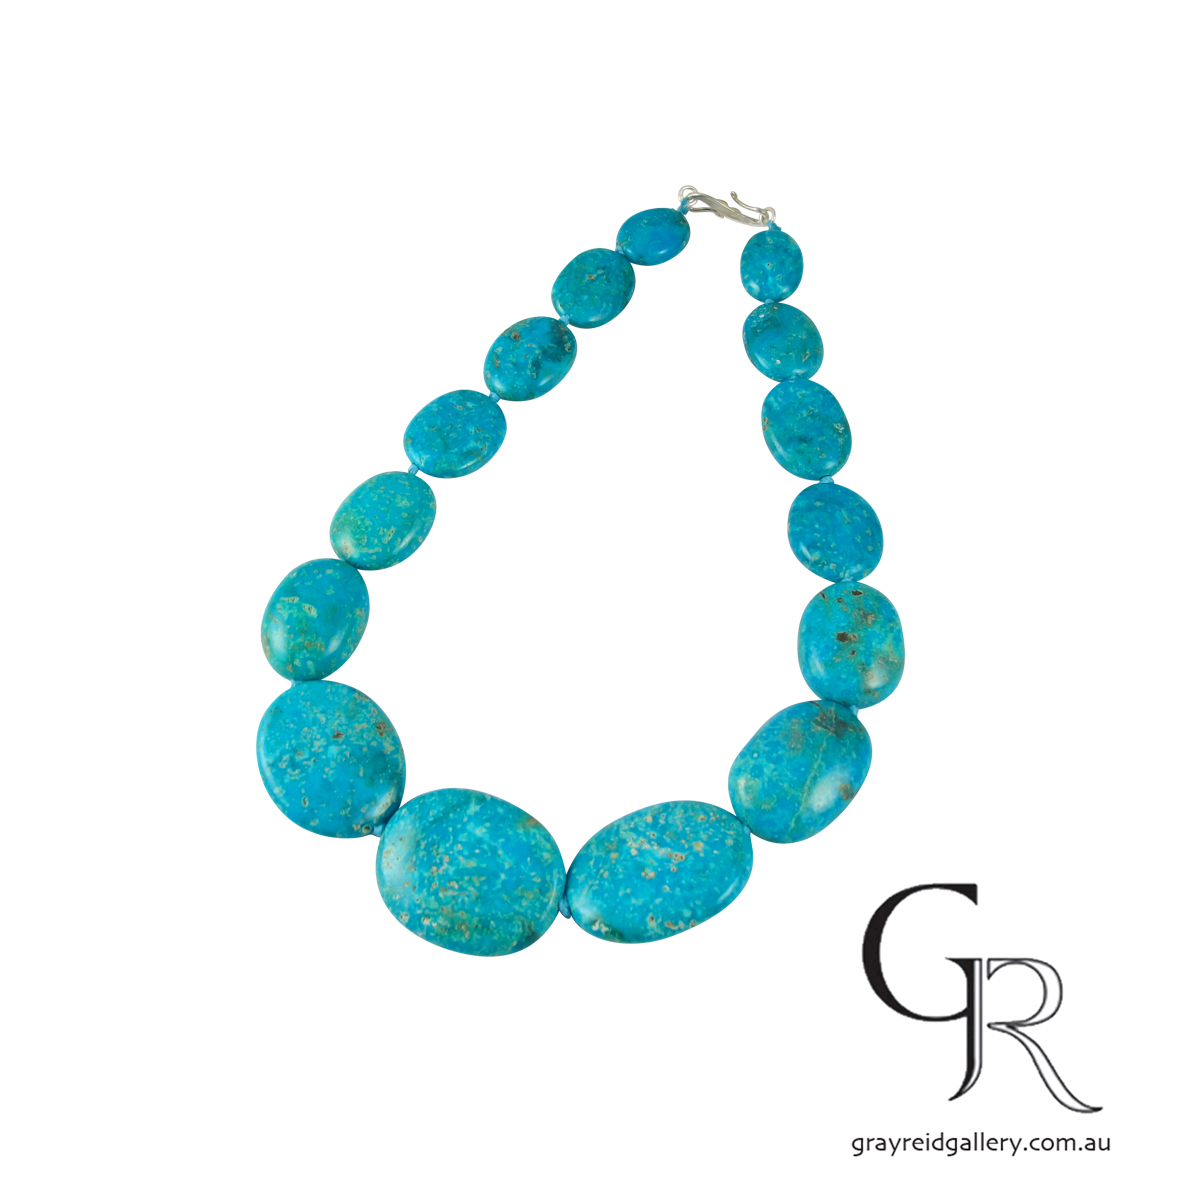 turquoise beads necklace gray reid gallery melbourne.jpg